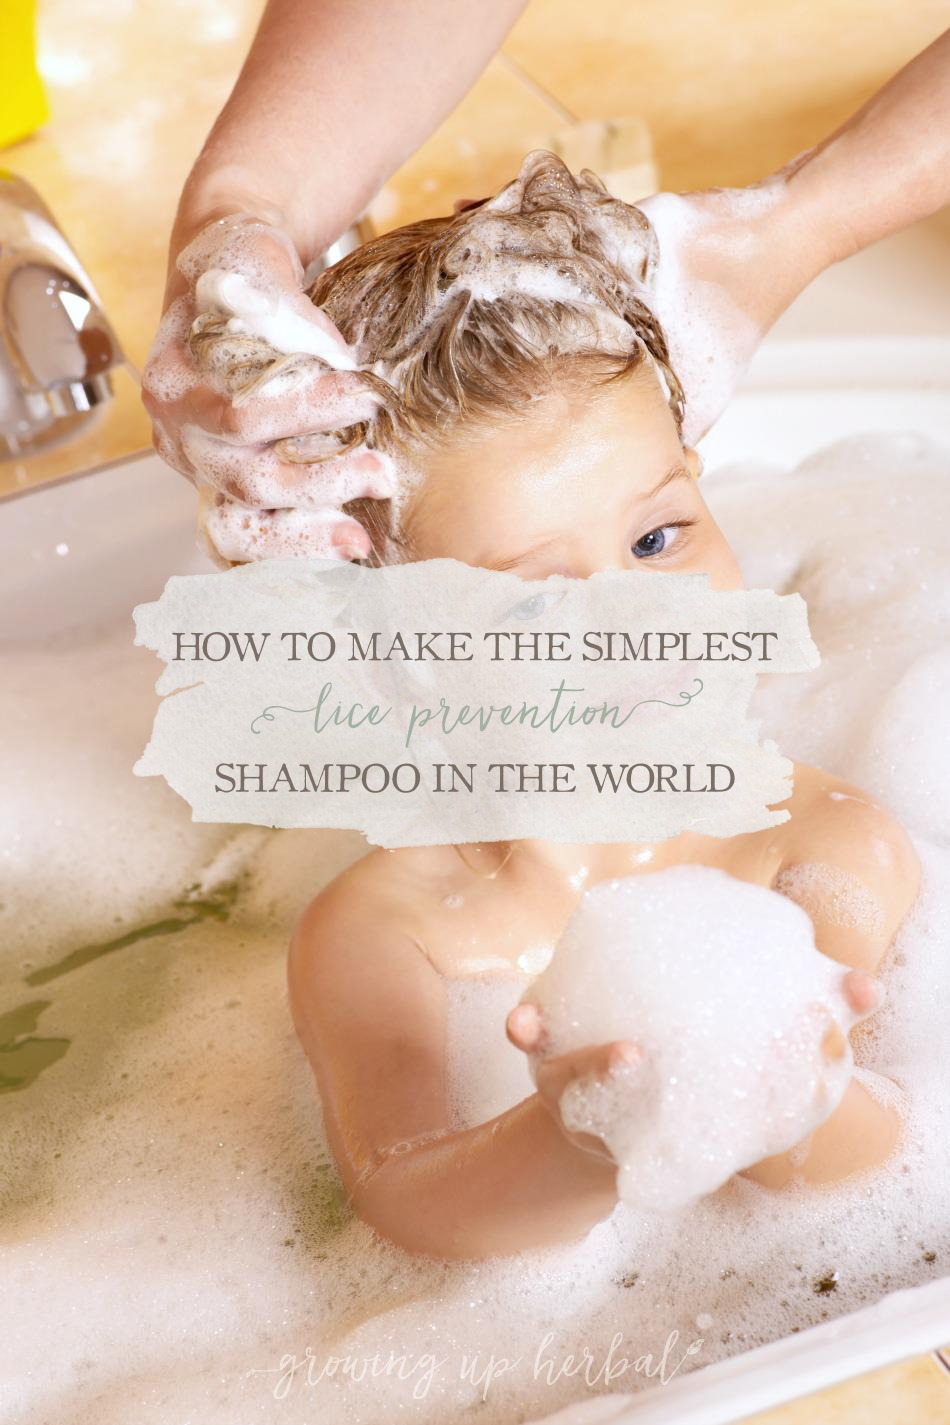 How To Make The Simplest Lice Prevention Shampoo & Conditioner In The World | Growing Up Herbal | Worried about your kid getting lice mama? Try this easy-to-make shampoo to help prevent it from happening.